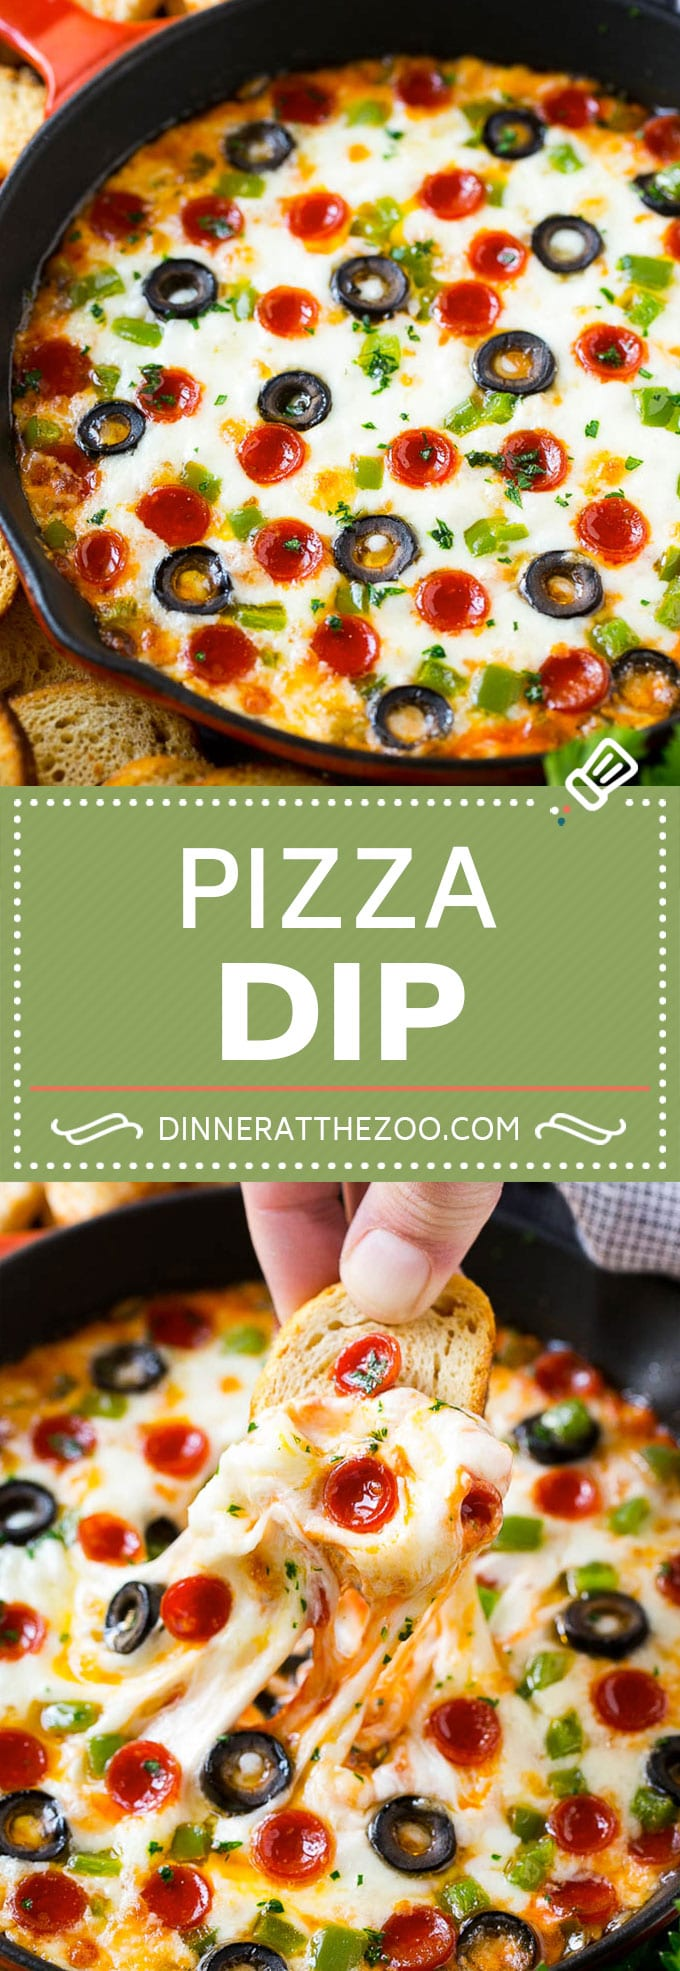 Pizza Dip Recipe | Pepperoni Pizza Dip | Crustless Pizza | Supreme Pizza Dip #pizza #dinneratthezoo #appetizer #dip